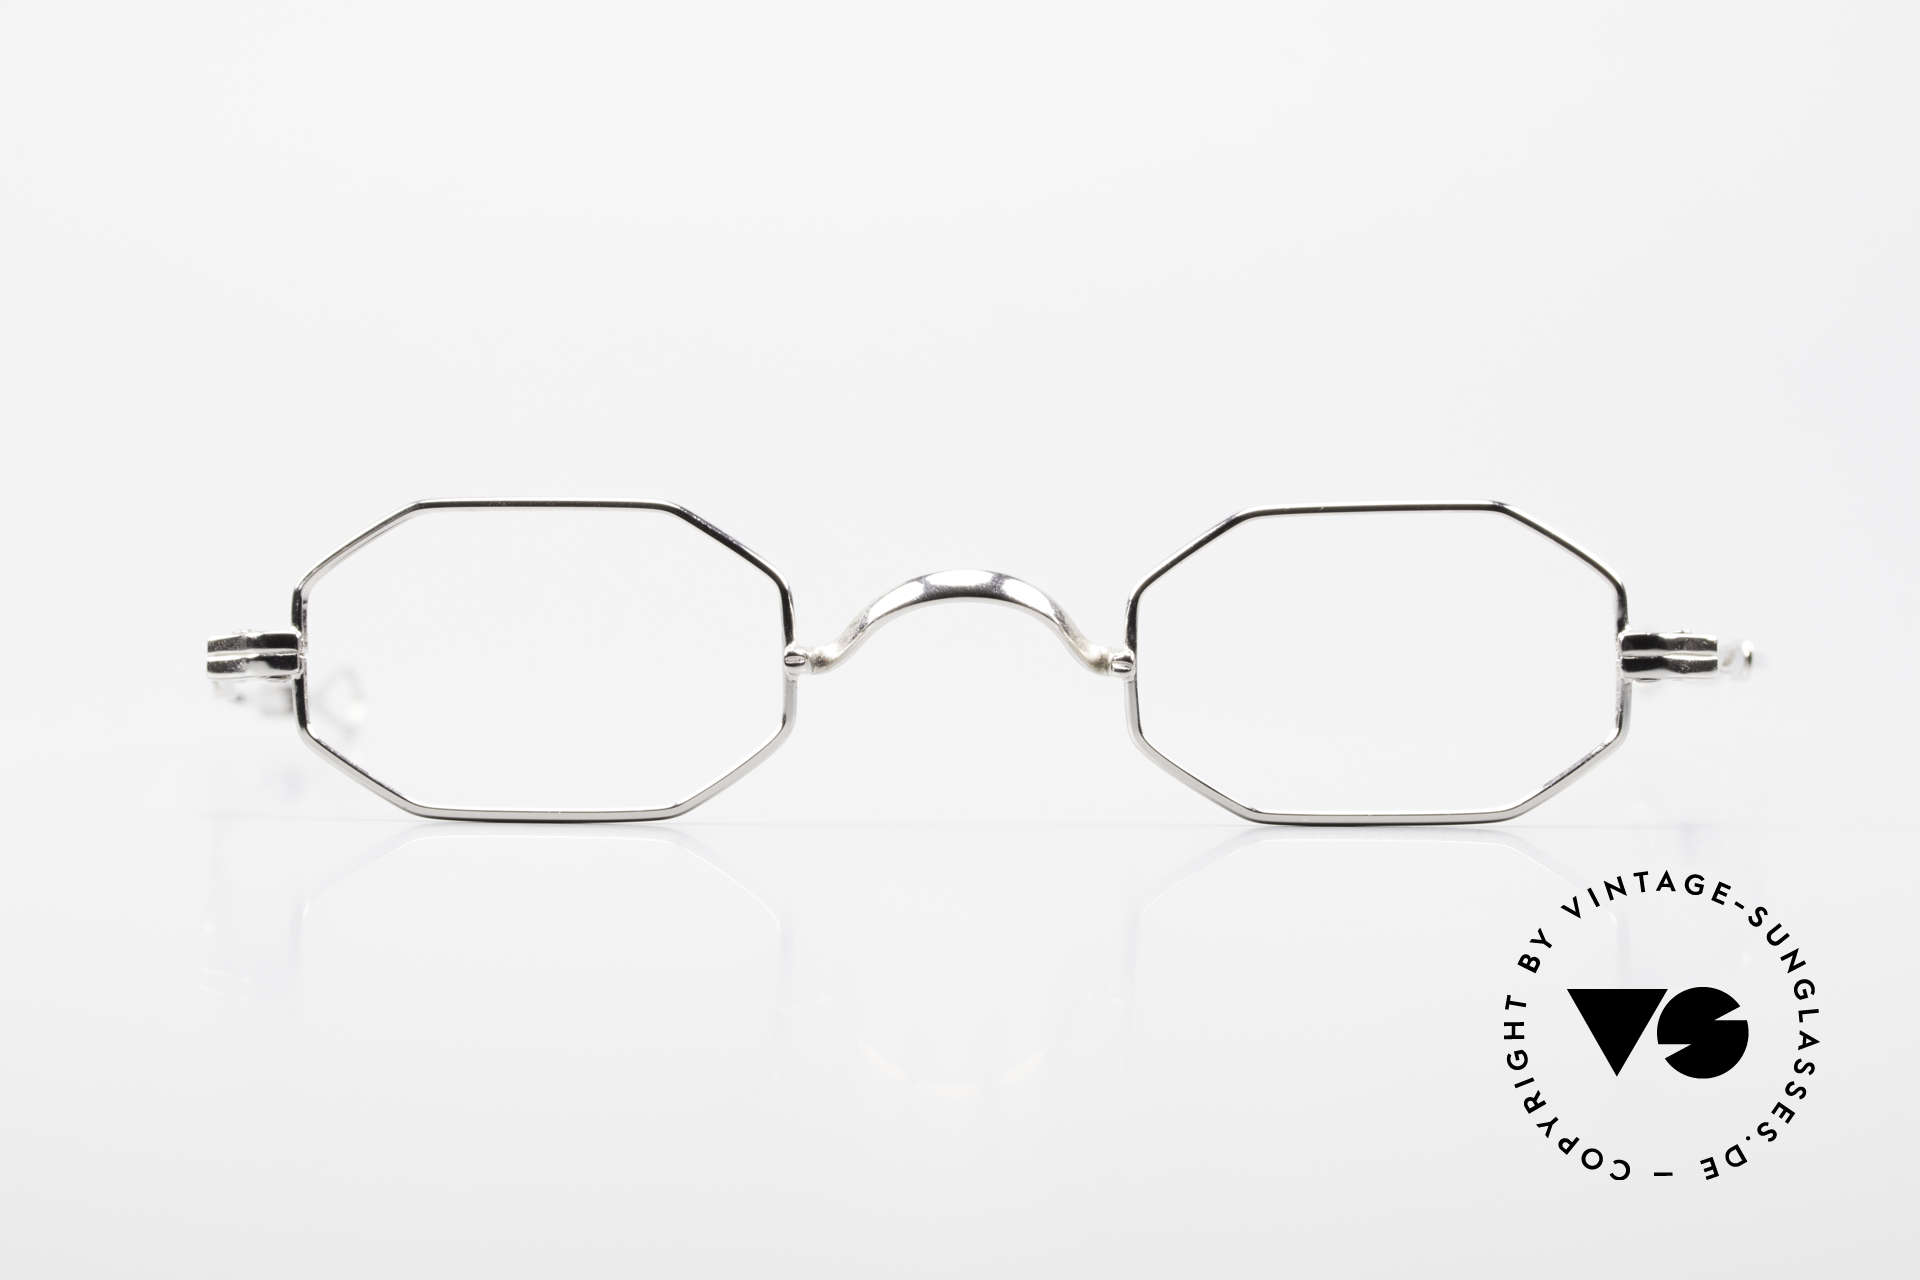 Lunor I 01 Telescopic Extendable Octagonal Frame, traditional German brand; quality handmade in Germany, Made for Men and Women